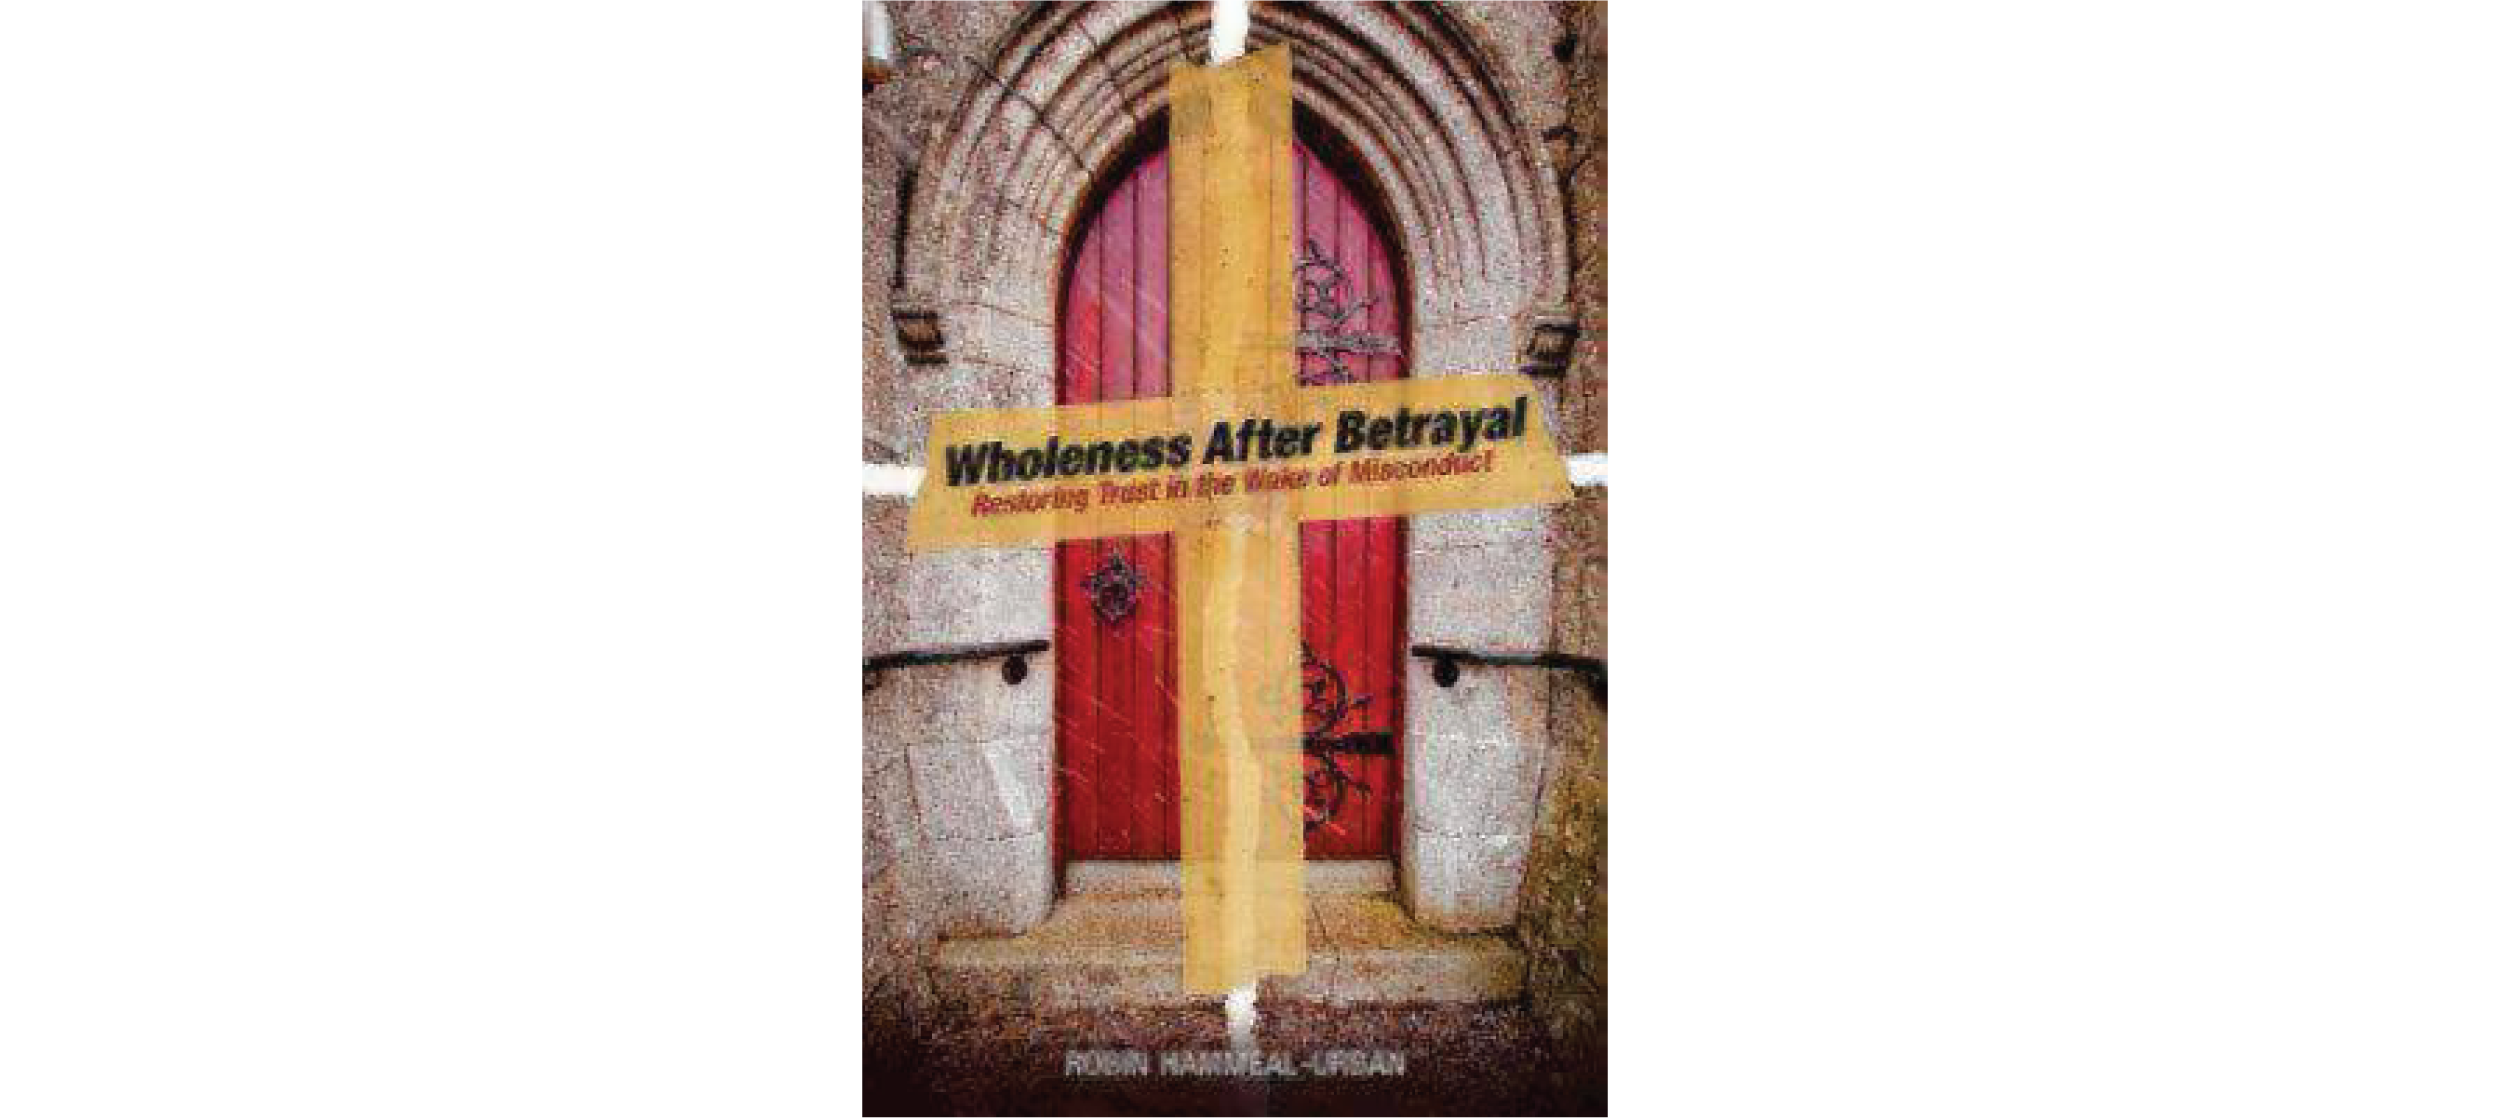 Wholeness After Betrayal: Restoring Trust in the Wake of Sexual Misconduct by Robin Hammeal-Urban